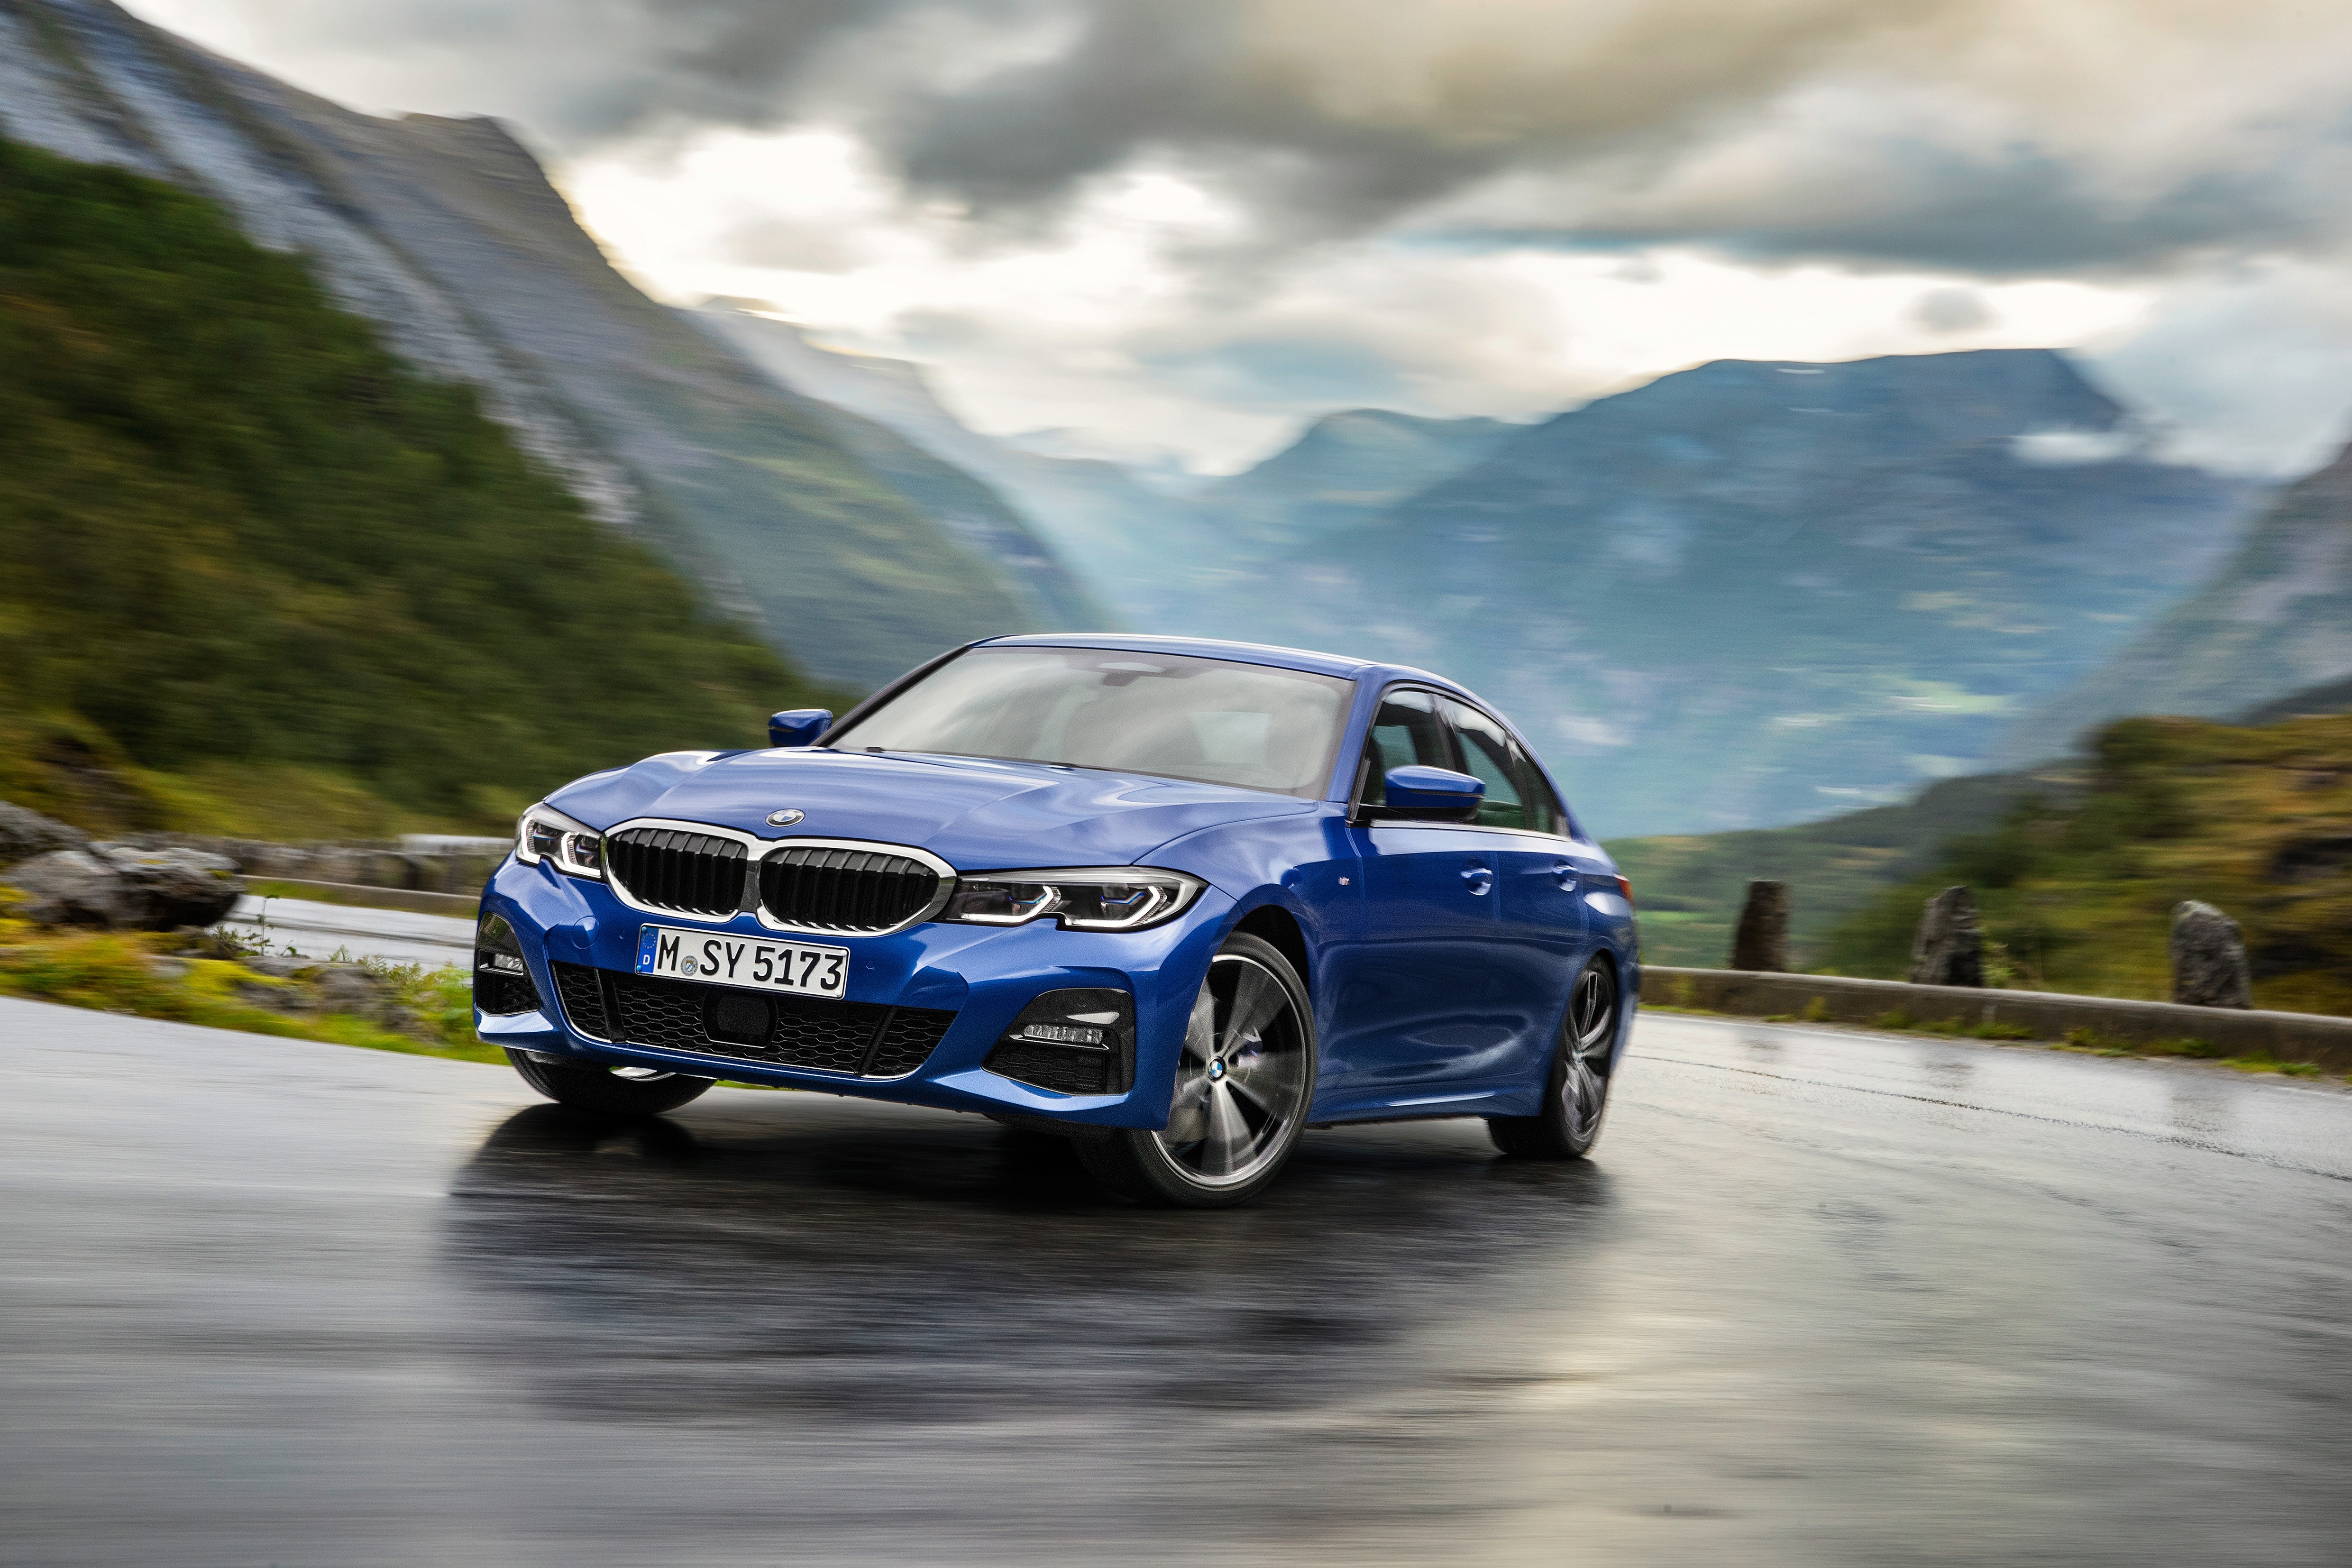 The fastest-ever 3 Series. The all-new BMW 3 Series Sedan.